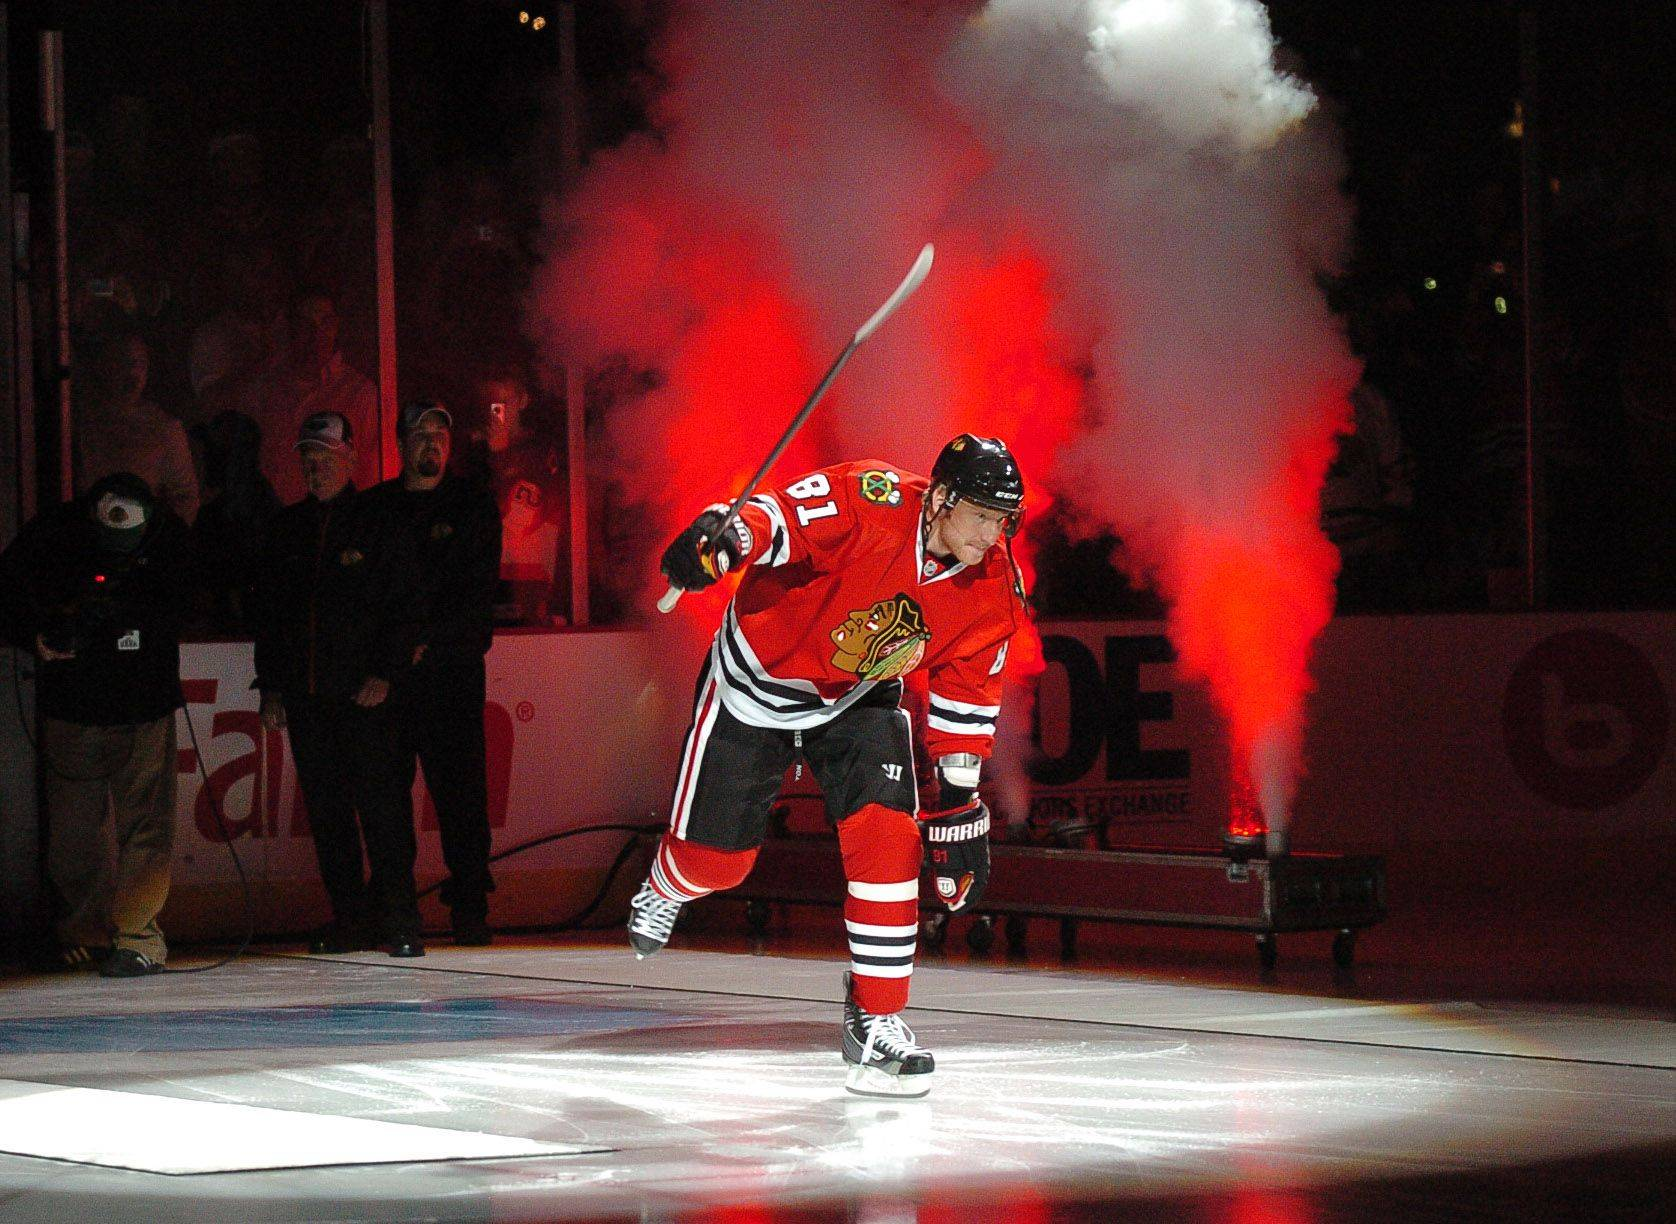 With his stick handling, penalty killing talents and defensive awareness, perhaps winger Marian Hossa deserves consideration for the Selke Trophy, which often is reserved for centers.